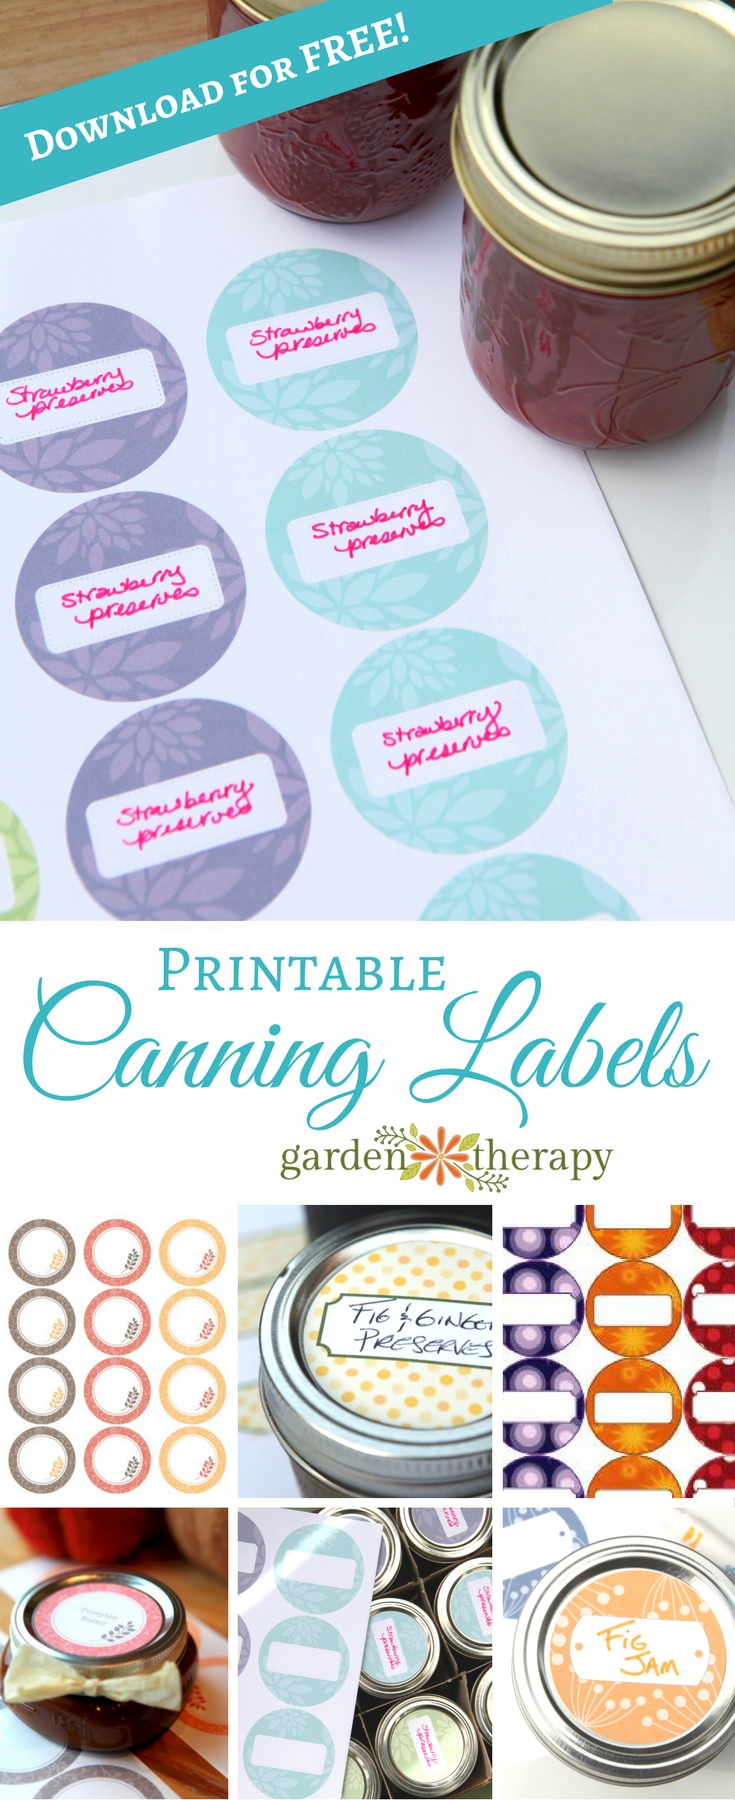 Free Printable Canning Labels - many designs to choose from